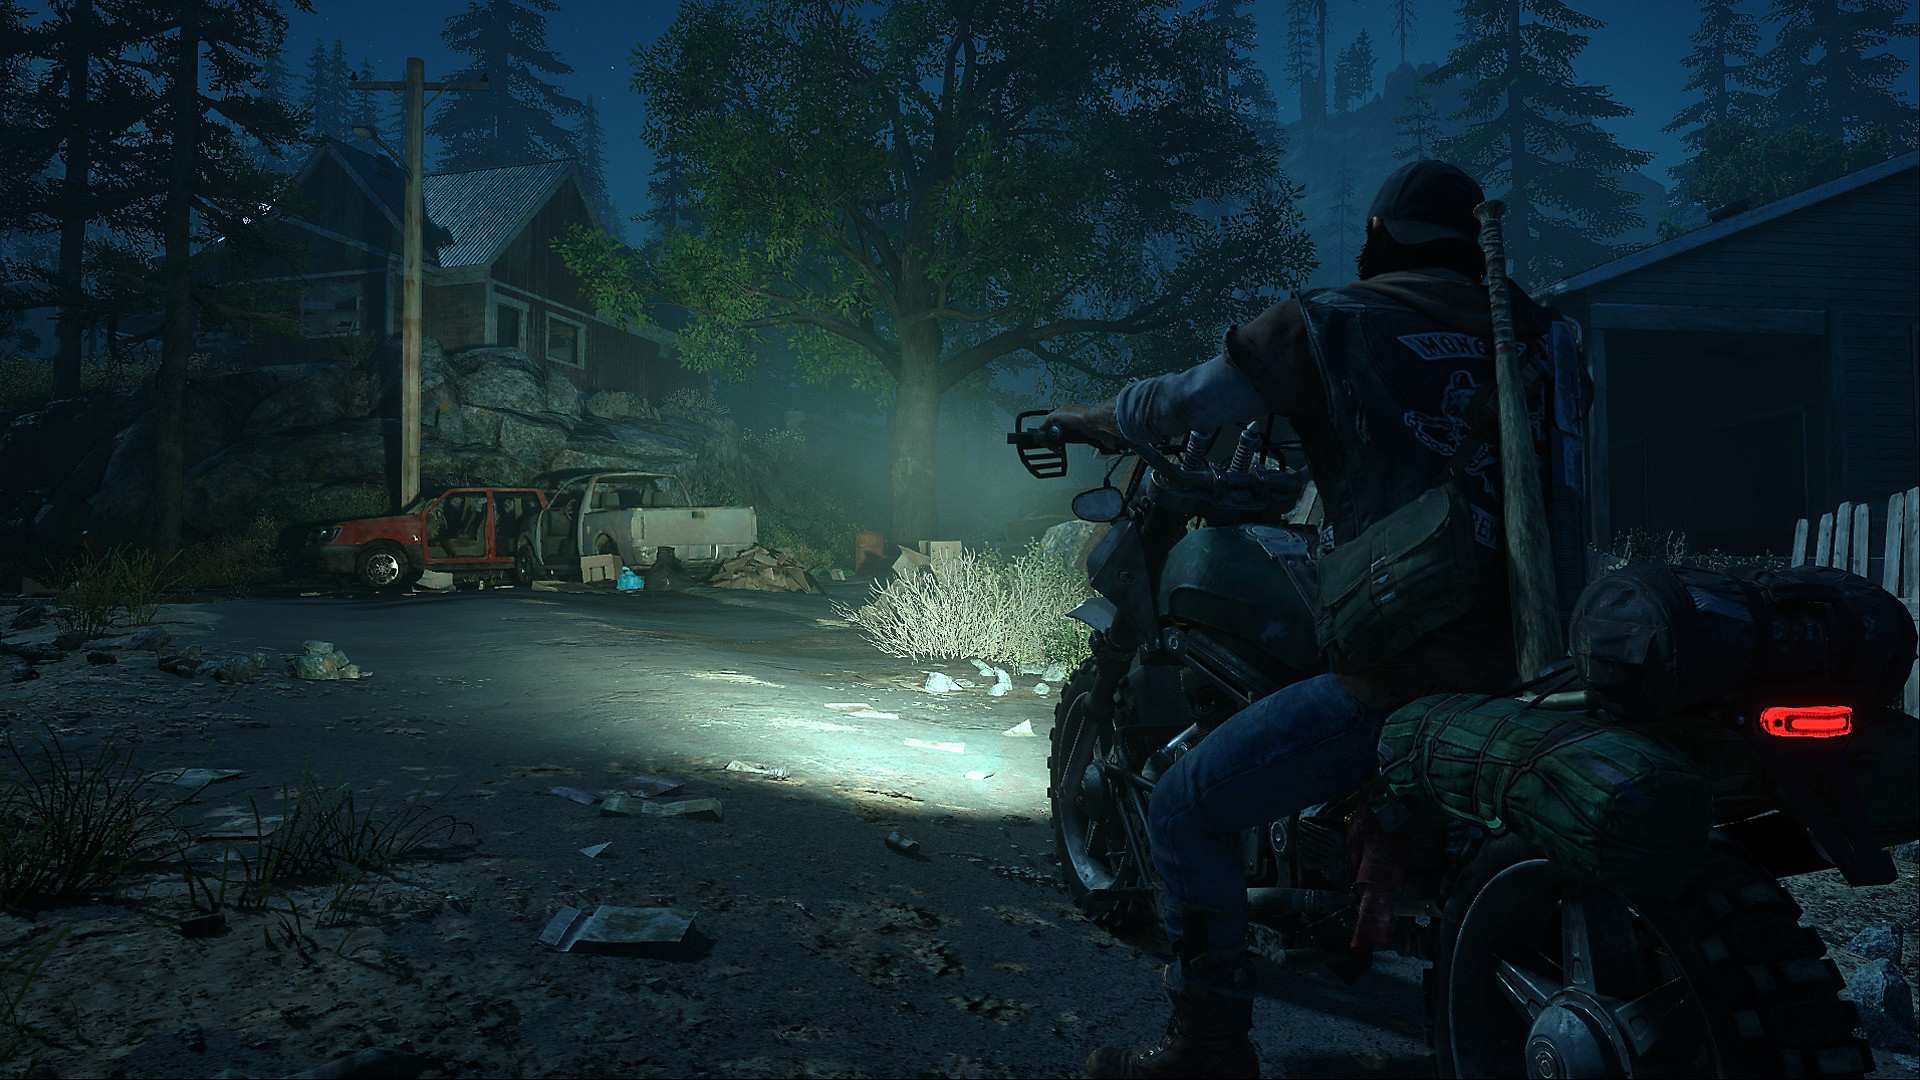 Days Gone Update 1 40: What's New and What Are Patch Notes?